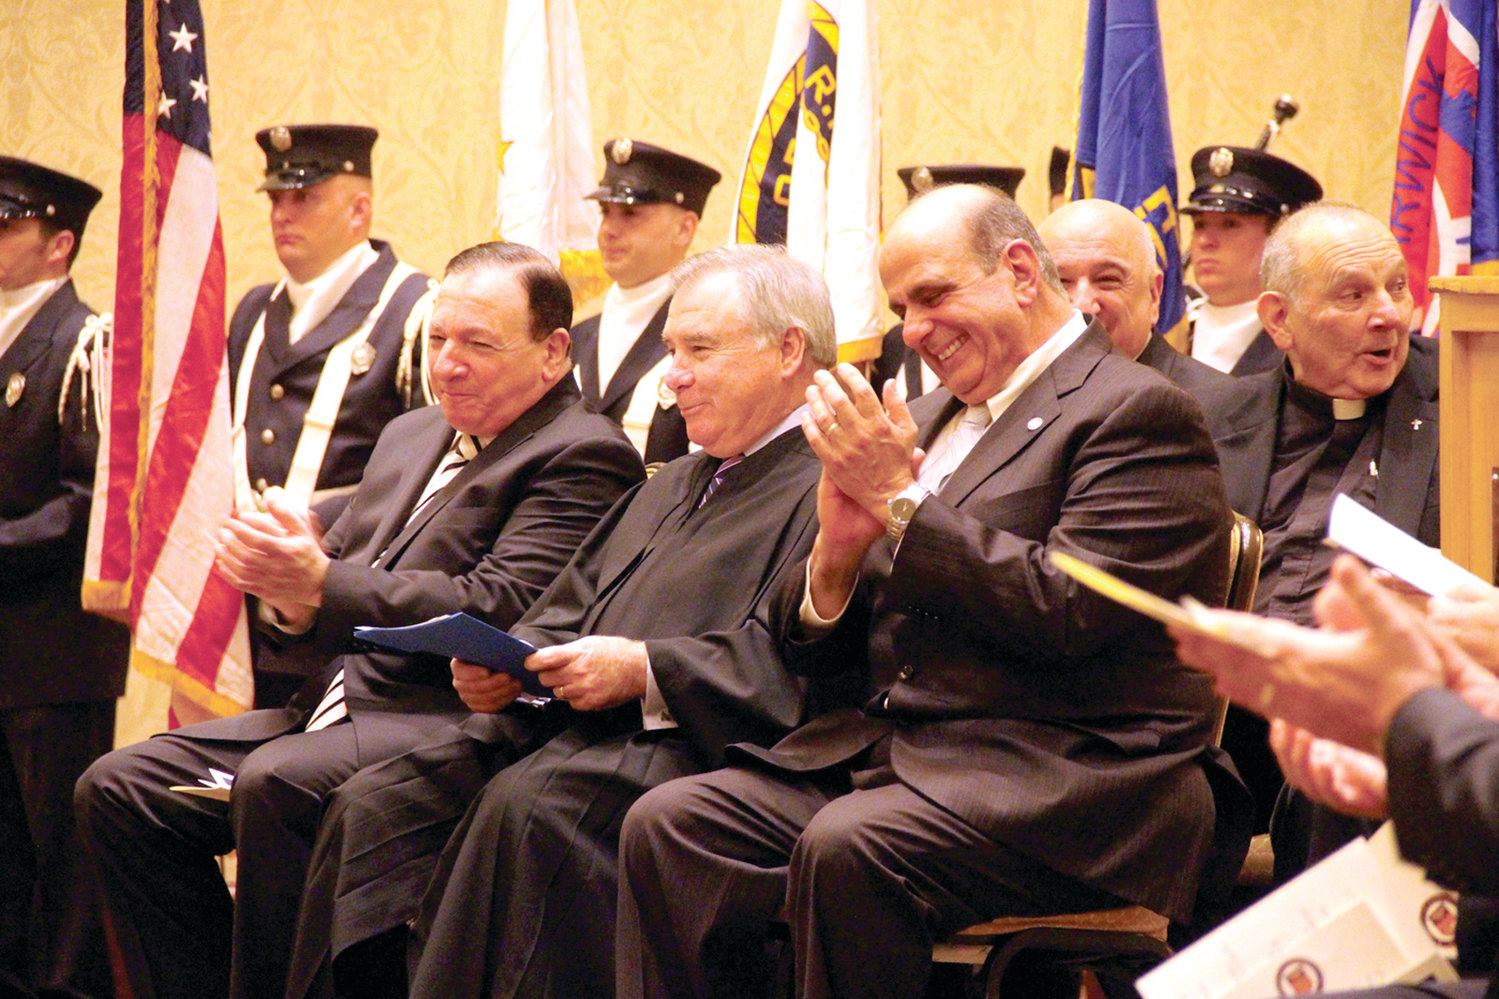 SHARING A LAUGH: While there was plenty of pageantry to the inauguration, there was also some humor as evidenced here as Michael Solomon, Associate Supreme Court Justice and former mayor Francis X. Flaherty and Mayor Joseph Solomon share a laugh.